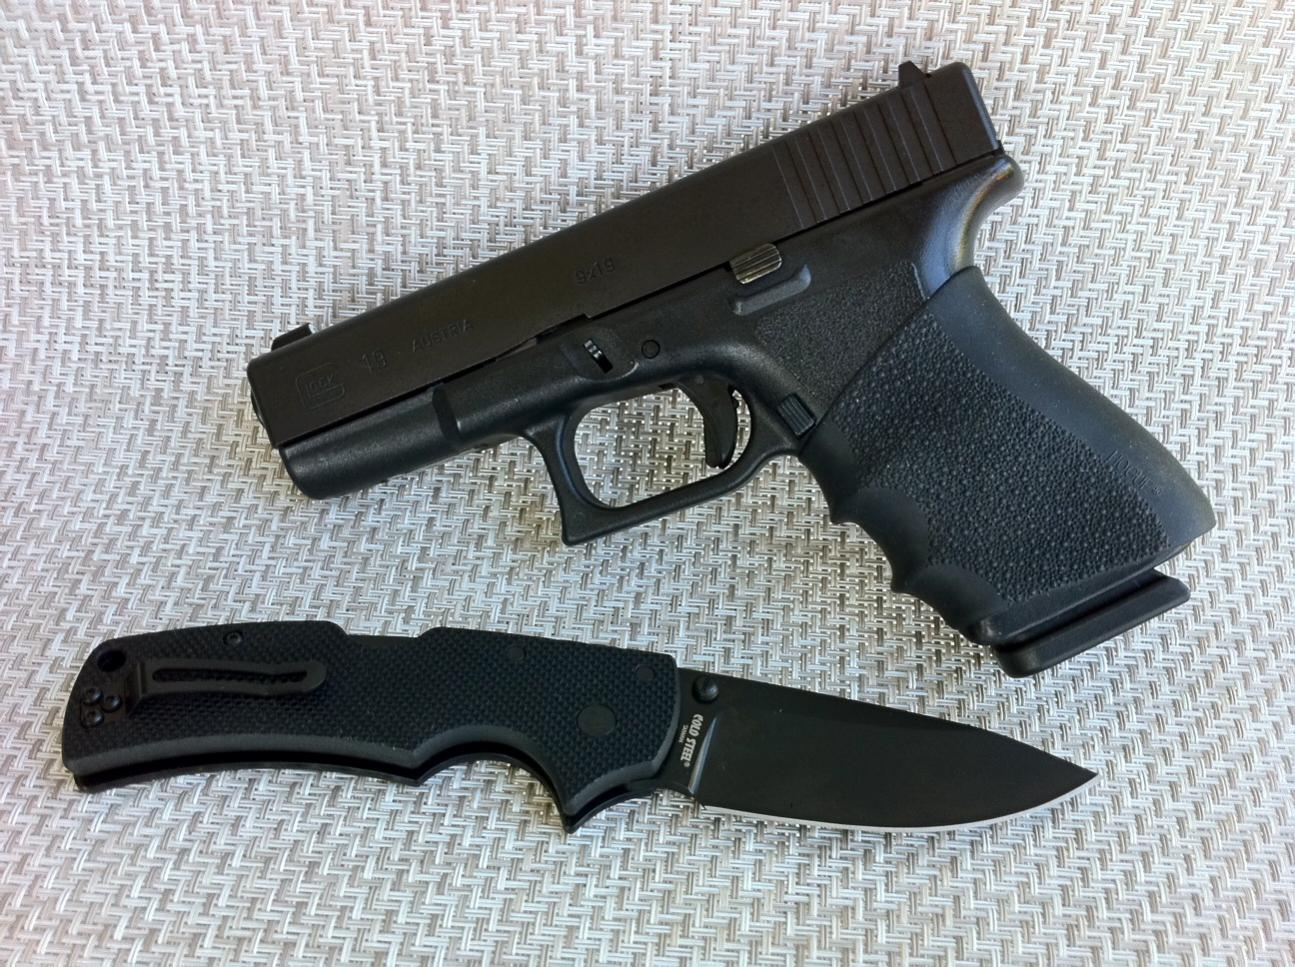 Does 9mm have enough stopping power?-photo.jpg